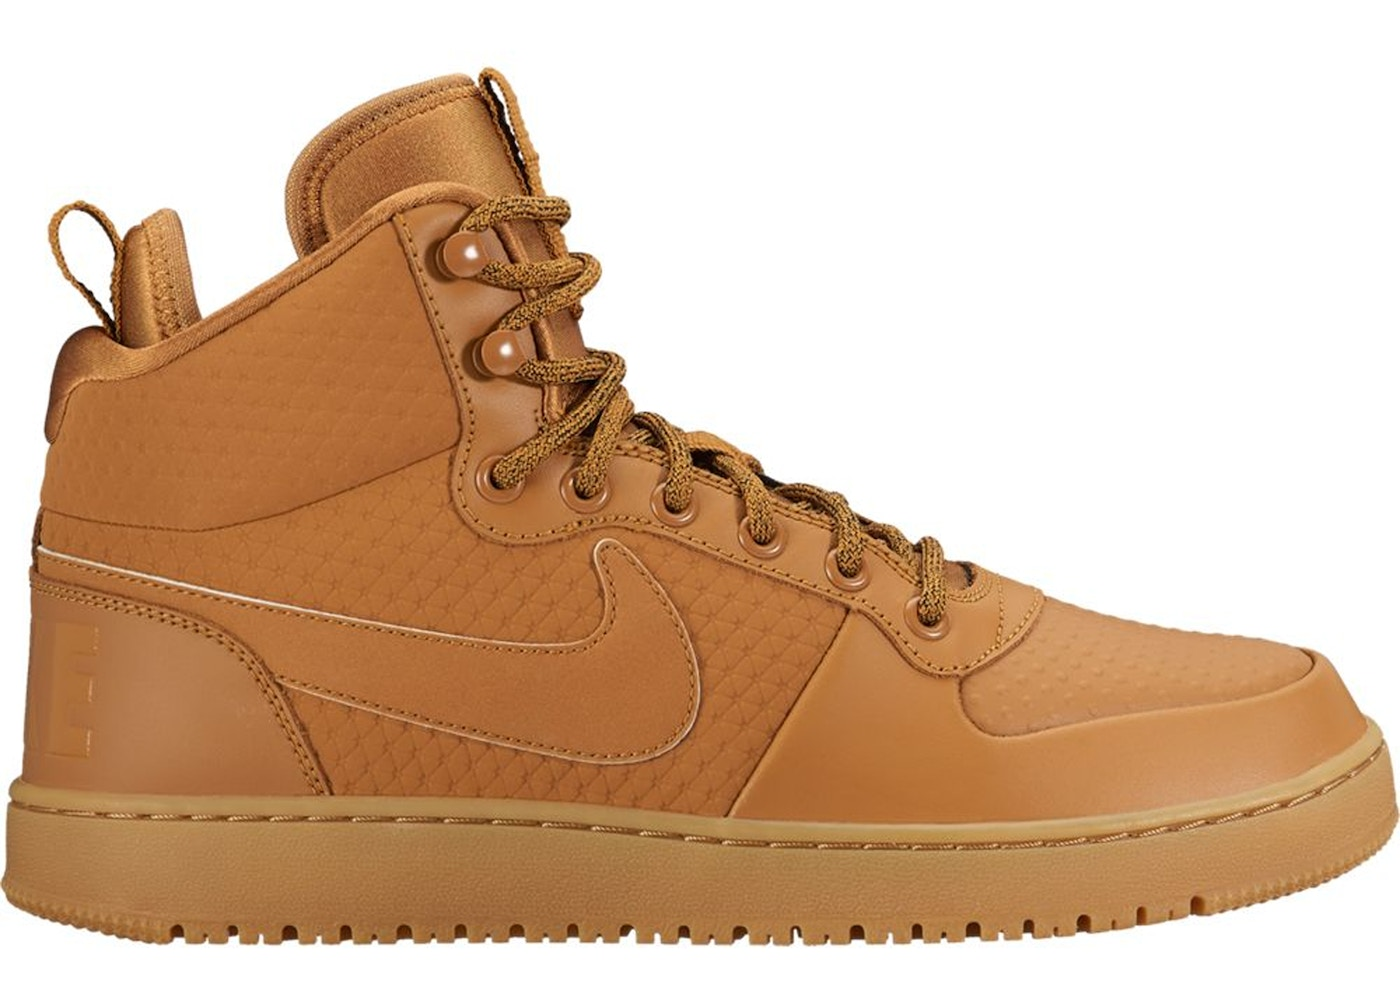 5011d3ae44 Nike Basketball Shoes - Lowest Ask